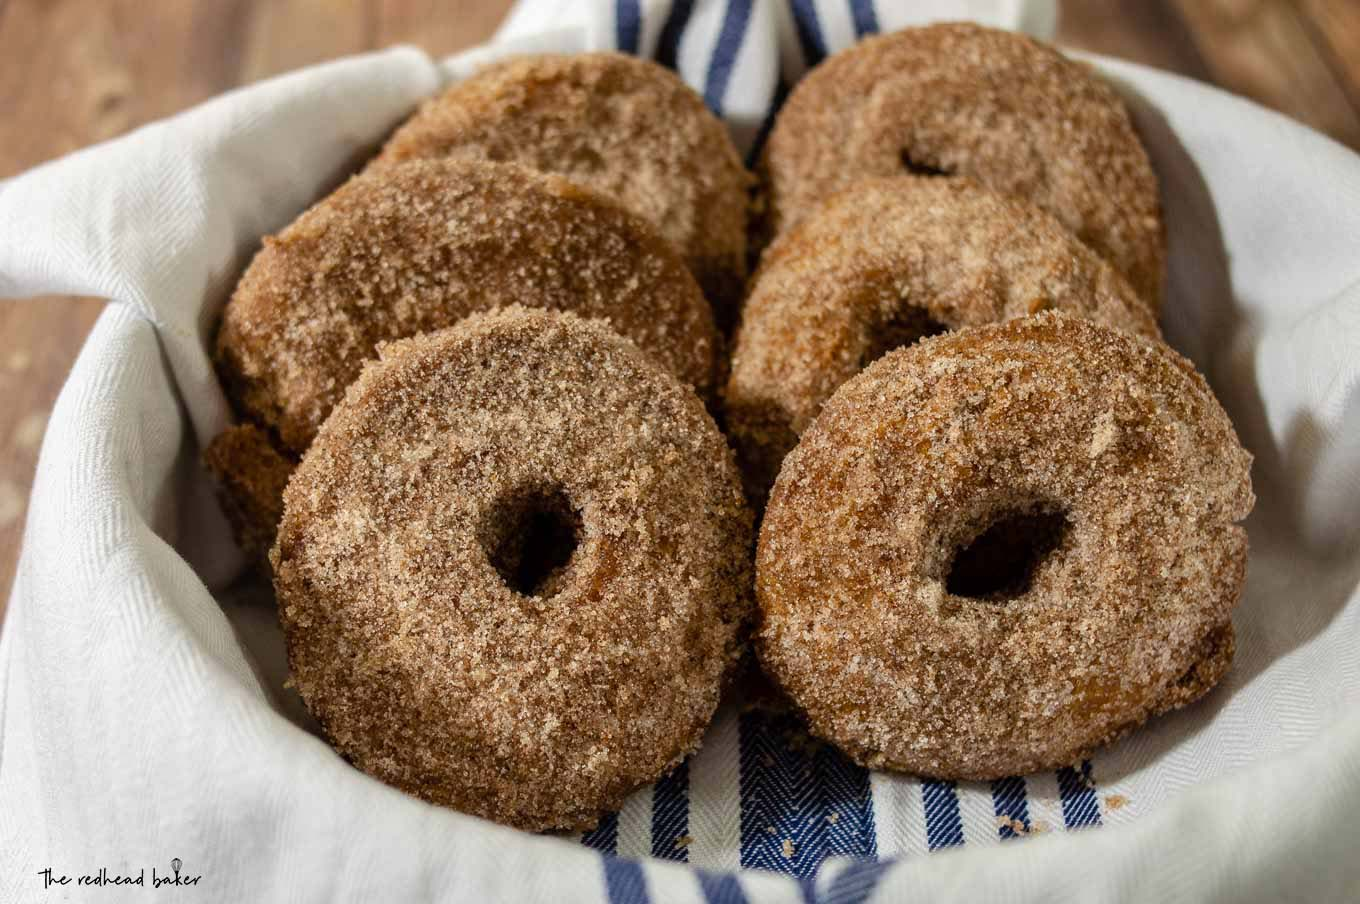 Six cider doughnuts in a round dish.